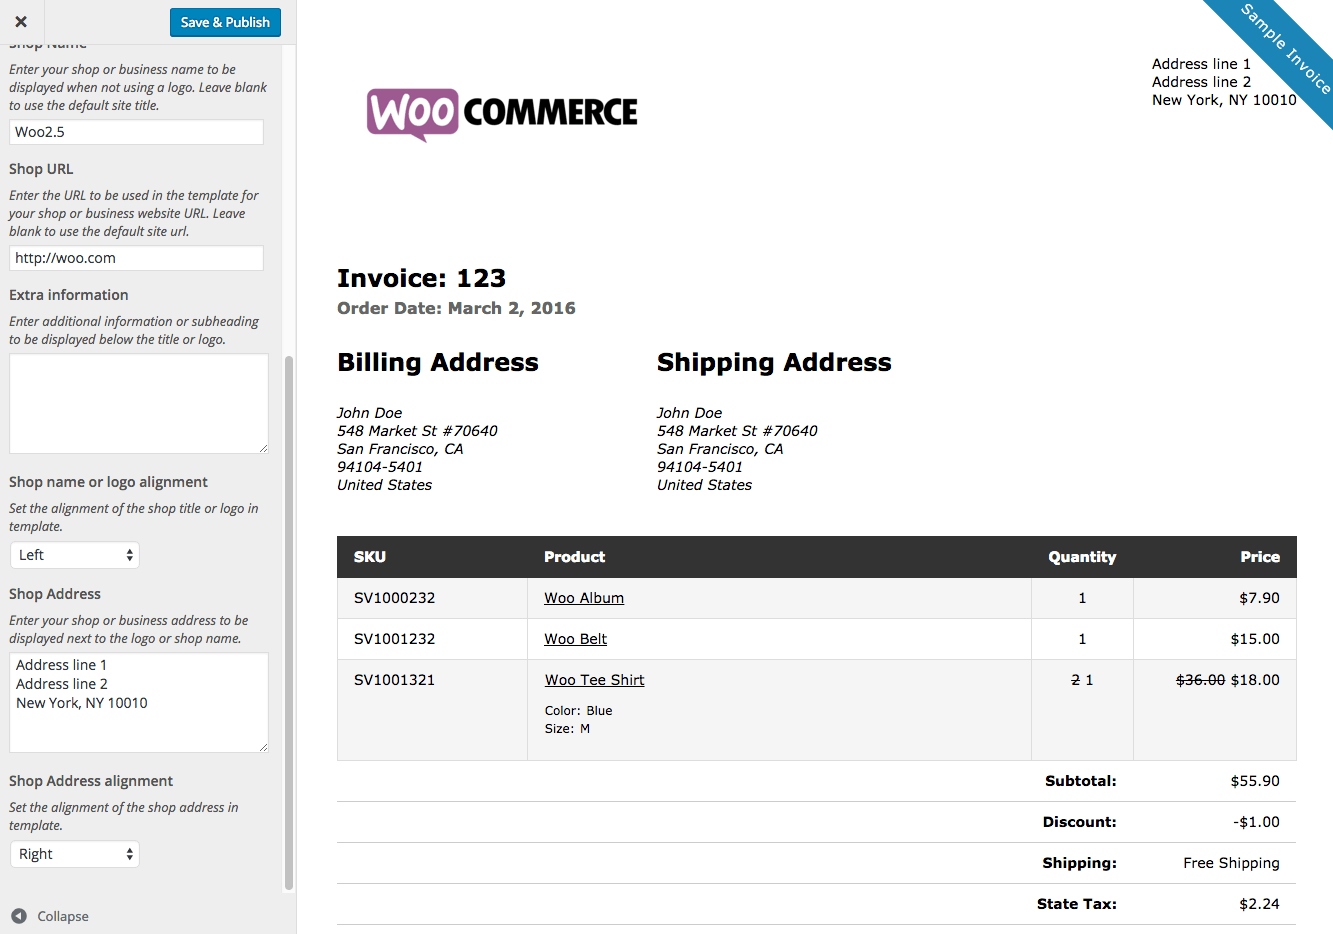 Centralasianshepherdus  Seductive Print Invoices Amp Packing Lists  Woocommerce With Gorgeous Woocommerce Print Invoices  Packing Lists Customizer With Astonishing Paypal Invoice Number Also Payroll Invoice In Addition How Do You Send A Paypal Invoice And Invoice Po As Well As Invoice Price Variance Additionally Invoice Template Free Printable From Woocommercecom With Centralasianshepherdus  Gorgeous Print Invoices Amp Packing Lists  Woocommerce With Astonishing Woocommerce Print Invoices  Packing Lists Customizer And Seductive Paypal Invoice Number Also Payroll Invoice In Addition How Do You Send A Paypal Invoice From Woocommercecom